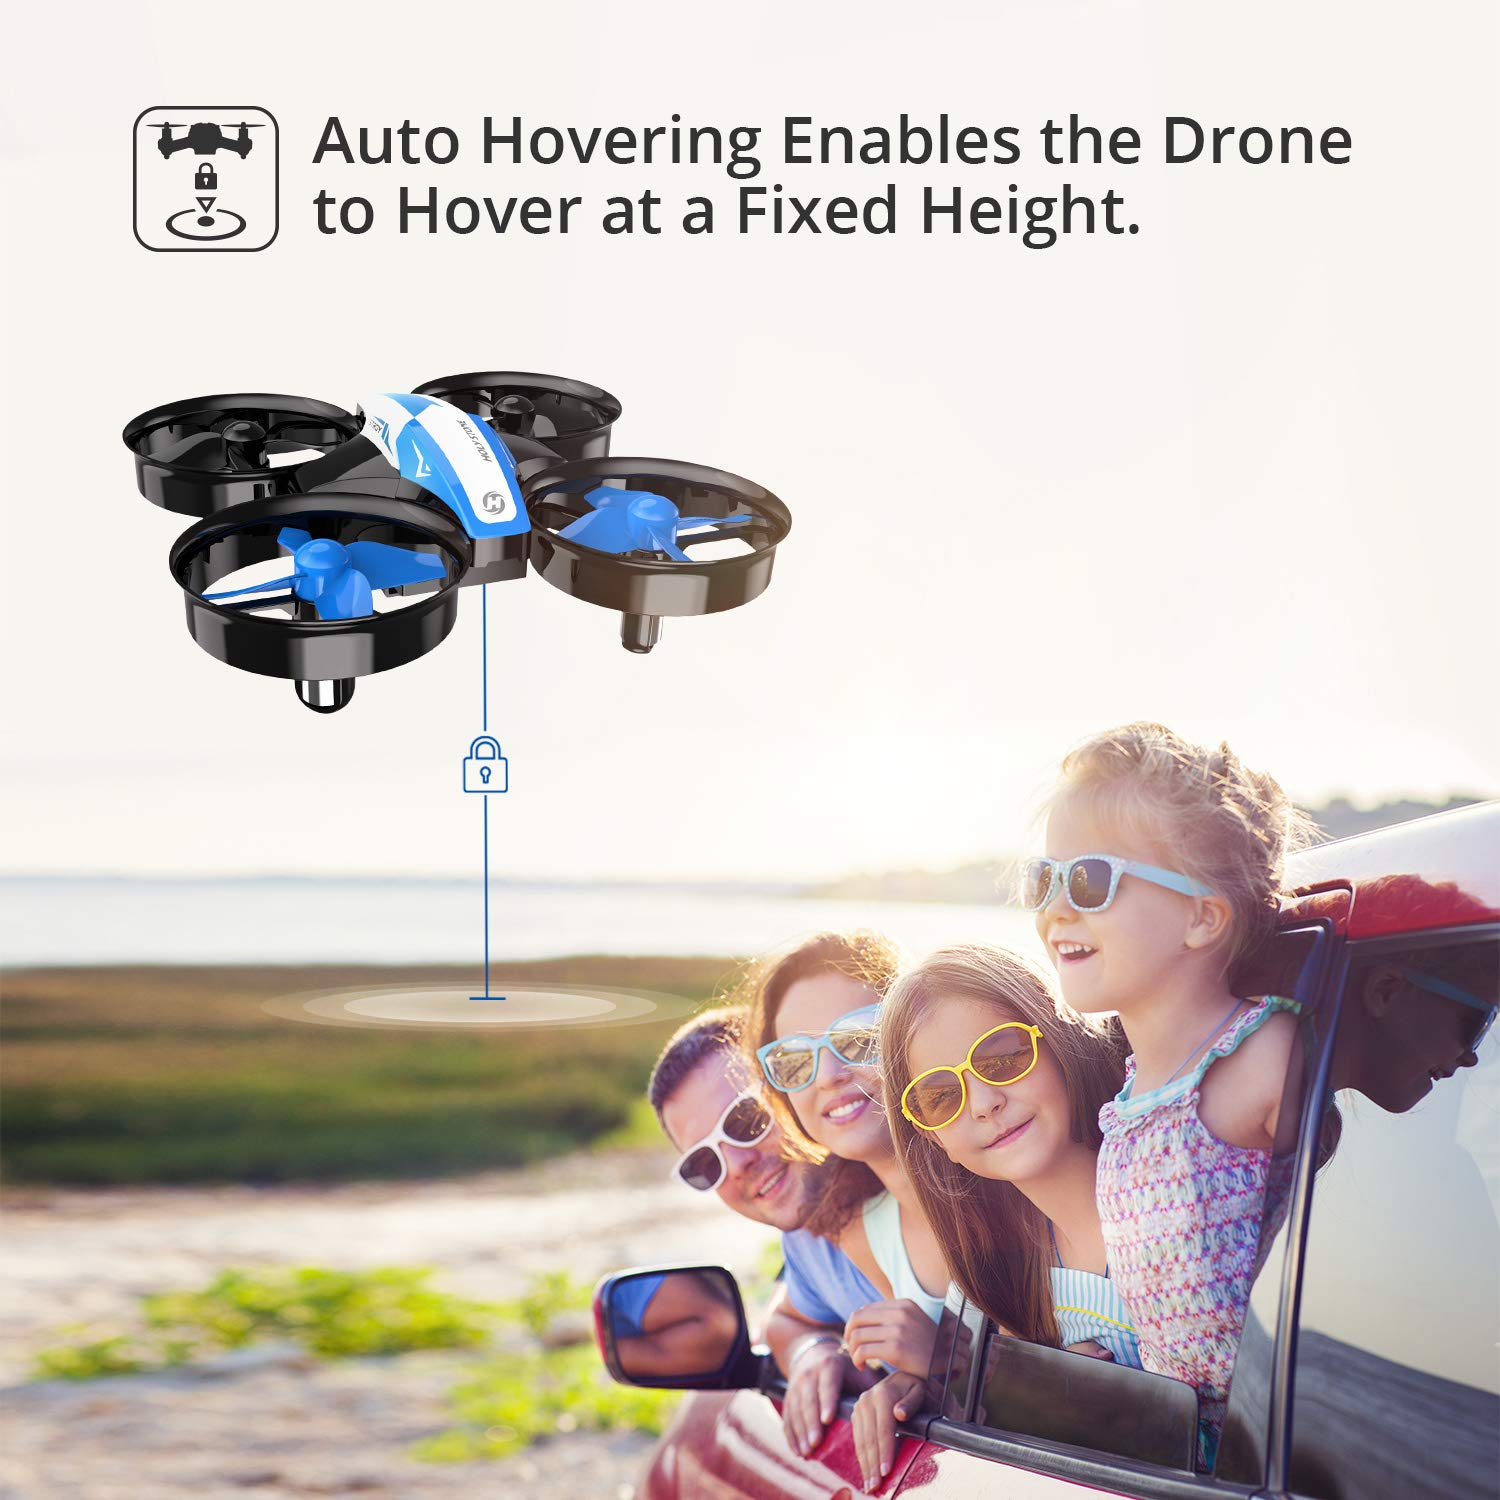 Holy Stone Mini Drone for Kids and Beginners RC Nano Quadcopter Indoor Small Helicopter Plane with Auto Hovering, 3D Flip, Headless Mode and 3 Batteries, Great Gift Toy for Boys and Girls, Blue by Holy Stone (Image #2)